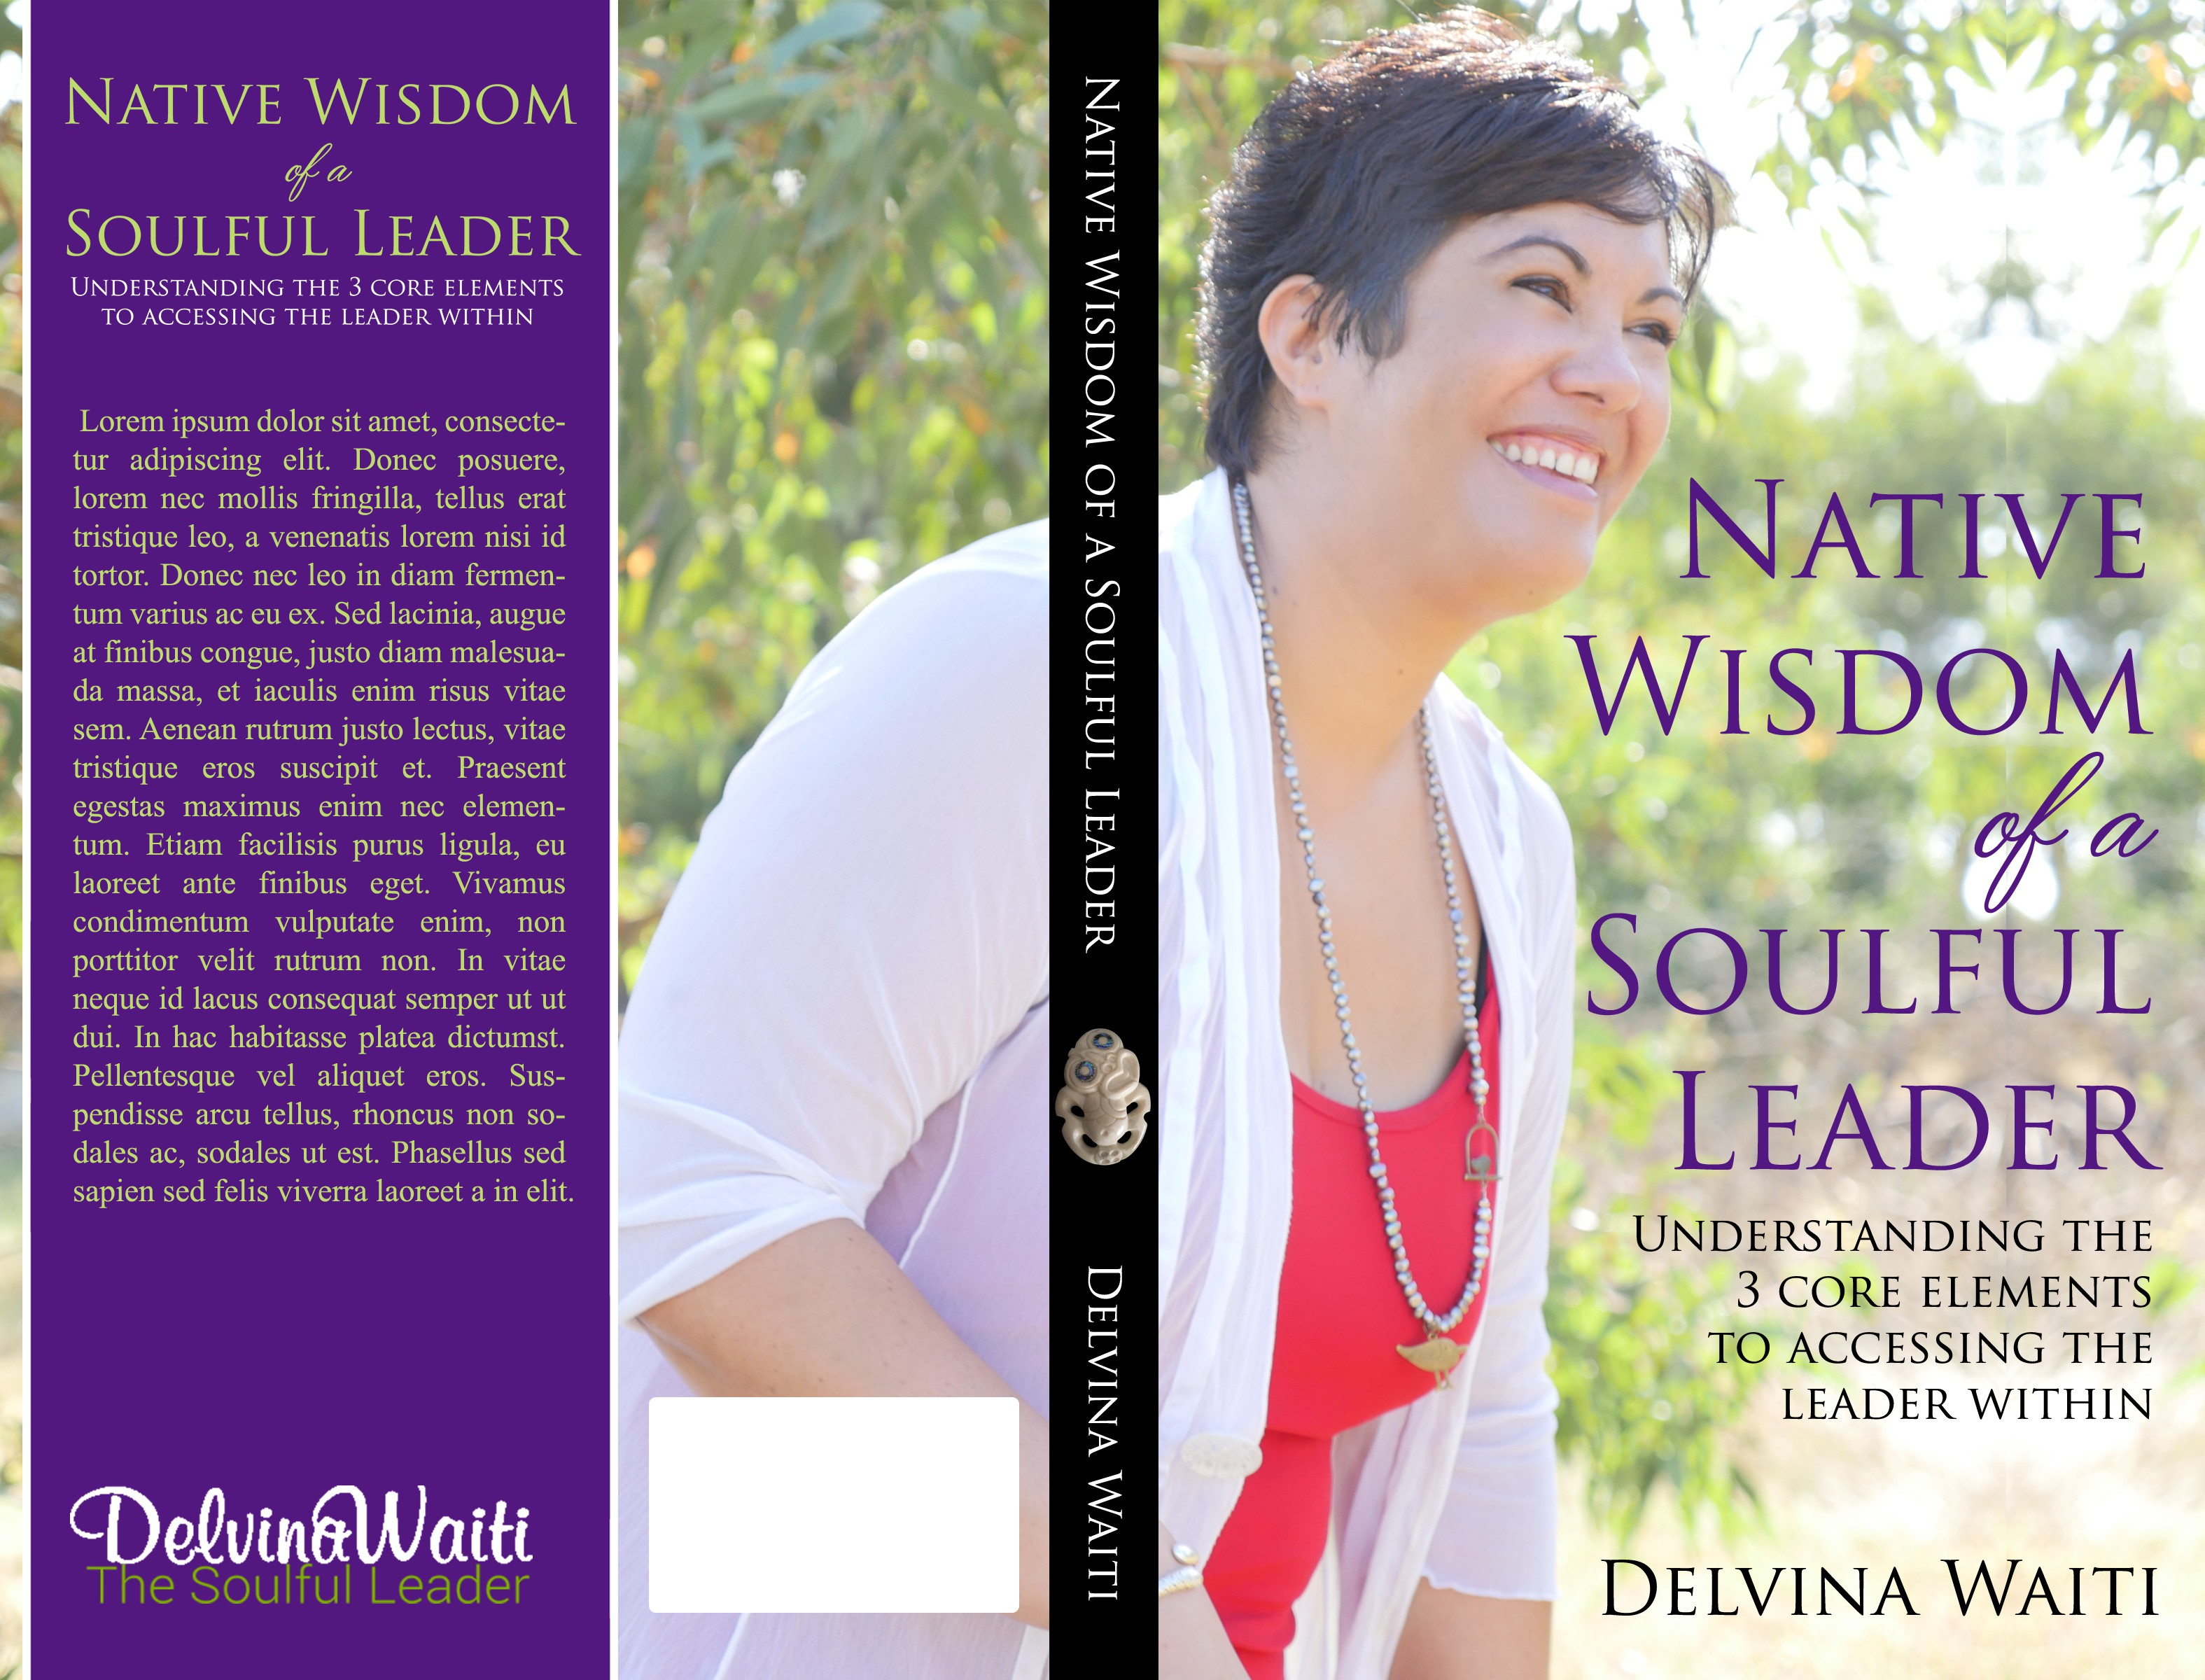 Create a soul wisdom book cover for a soulful leader